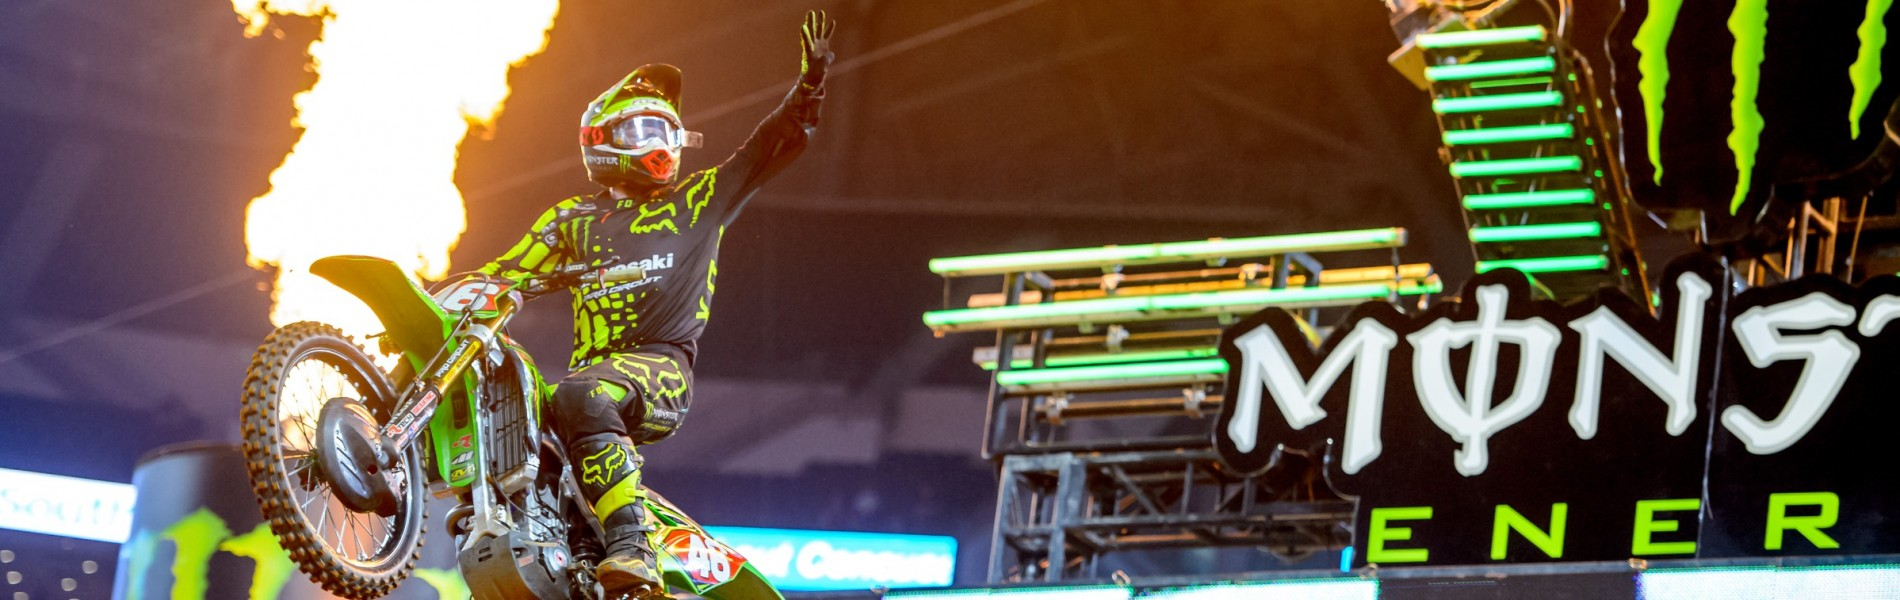 Monster at the 2017 Supercross in Arlington, Texas